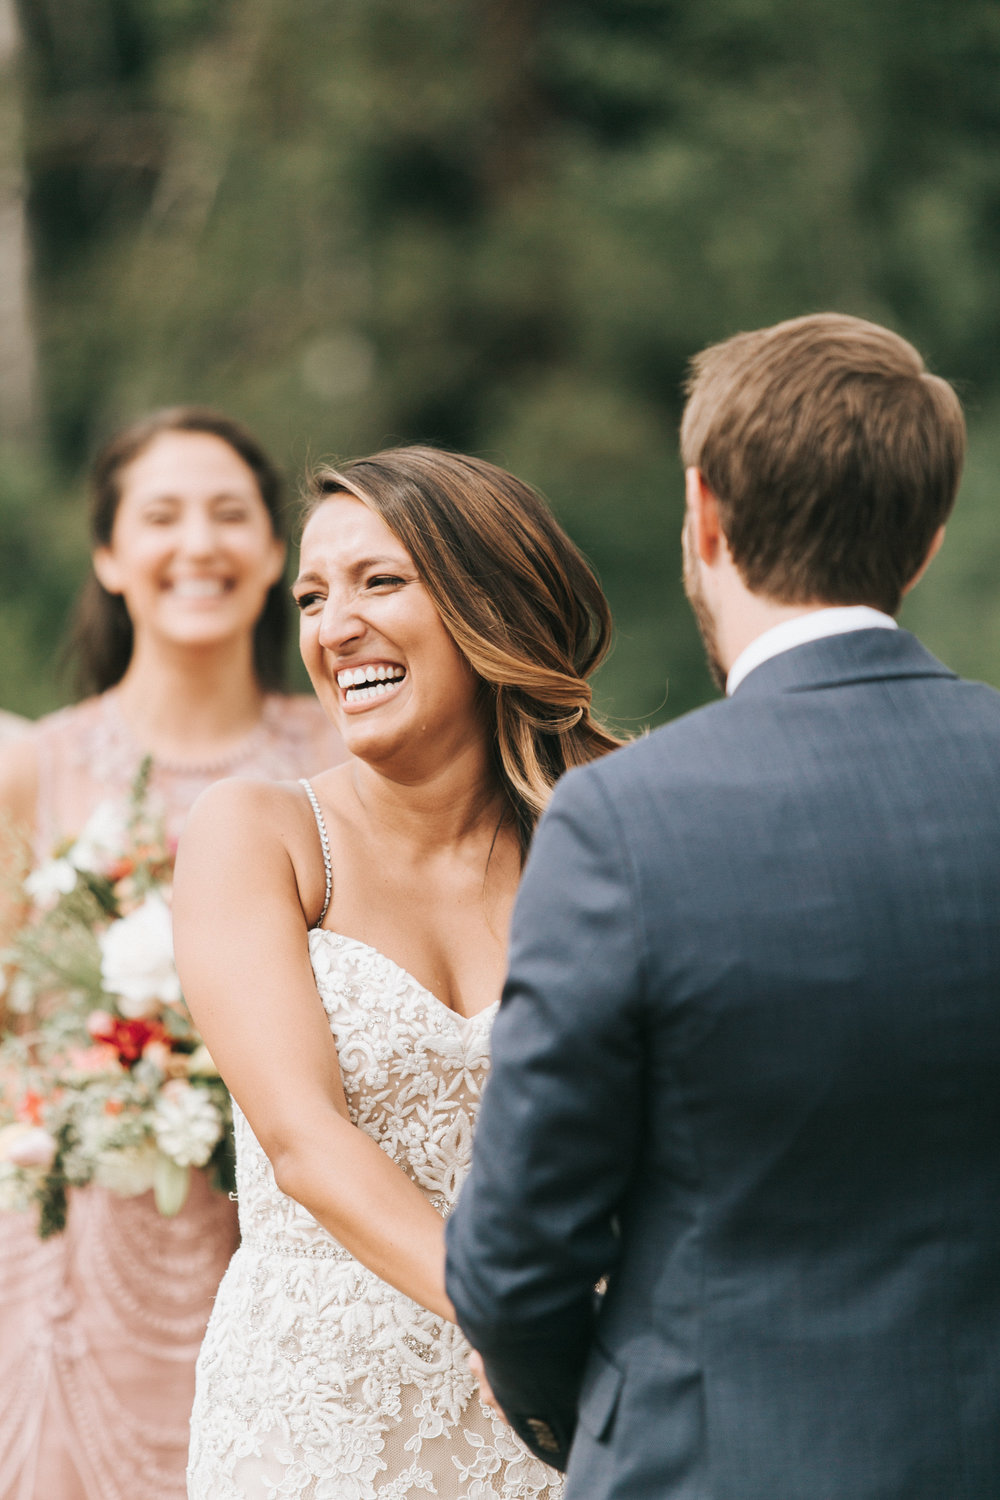 9 Things to Do on Wedding day | Here's Claire looking out at her guests during the ceremony | Photo by  Emily Delamater Photography  Officiated by  A Sweet Start